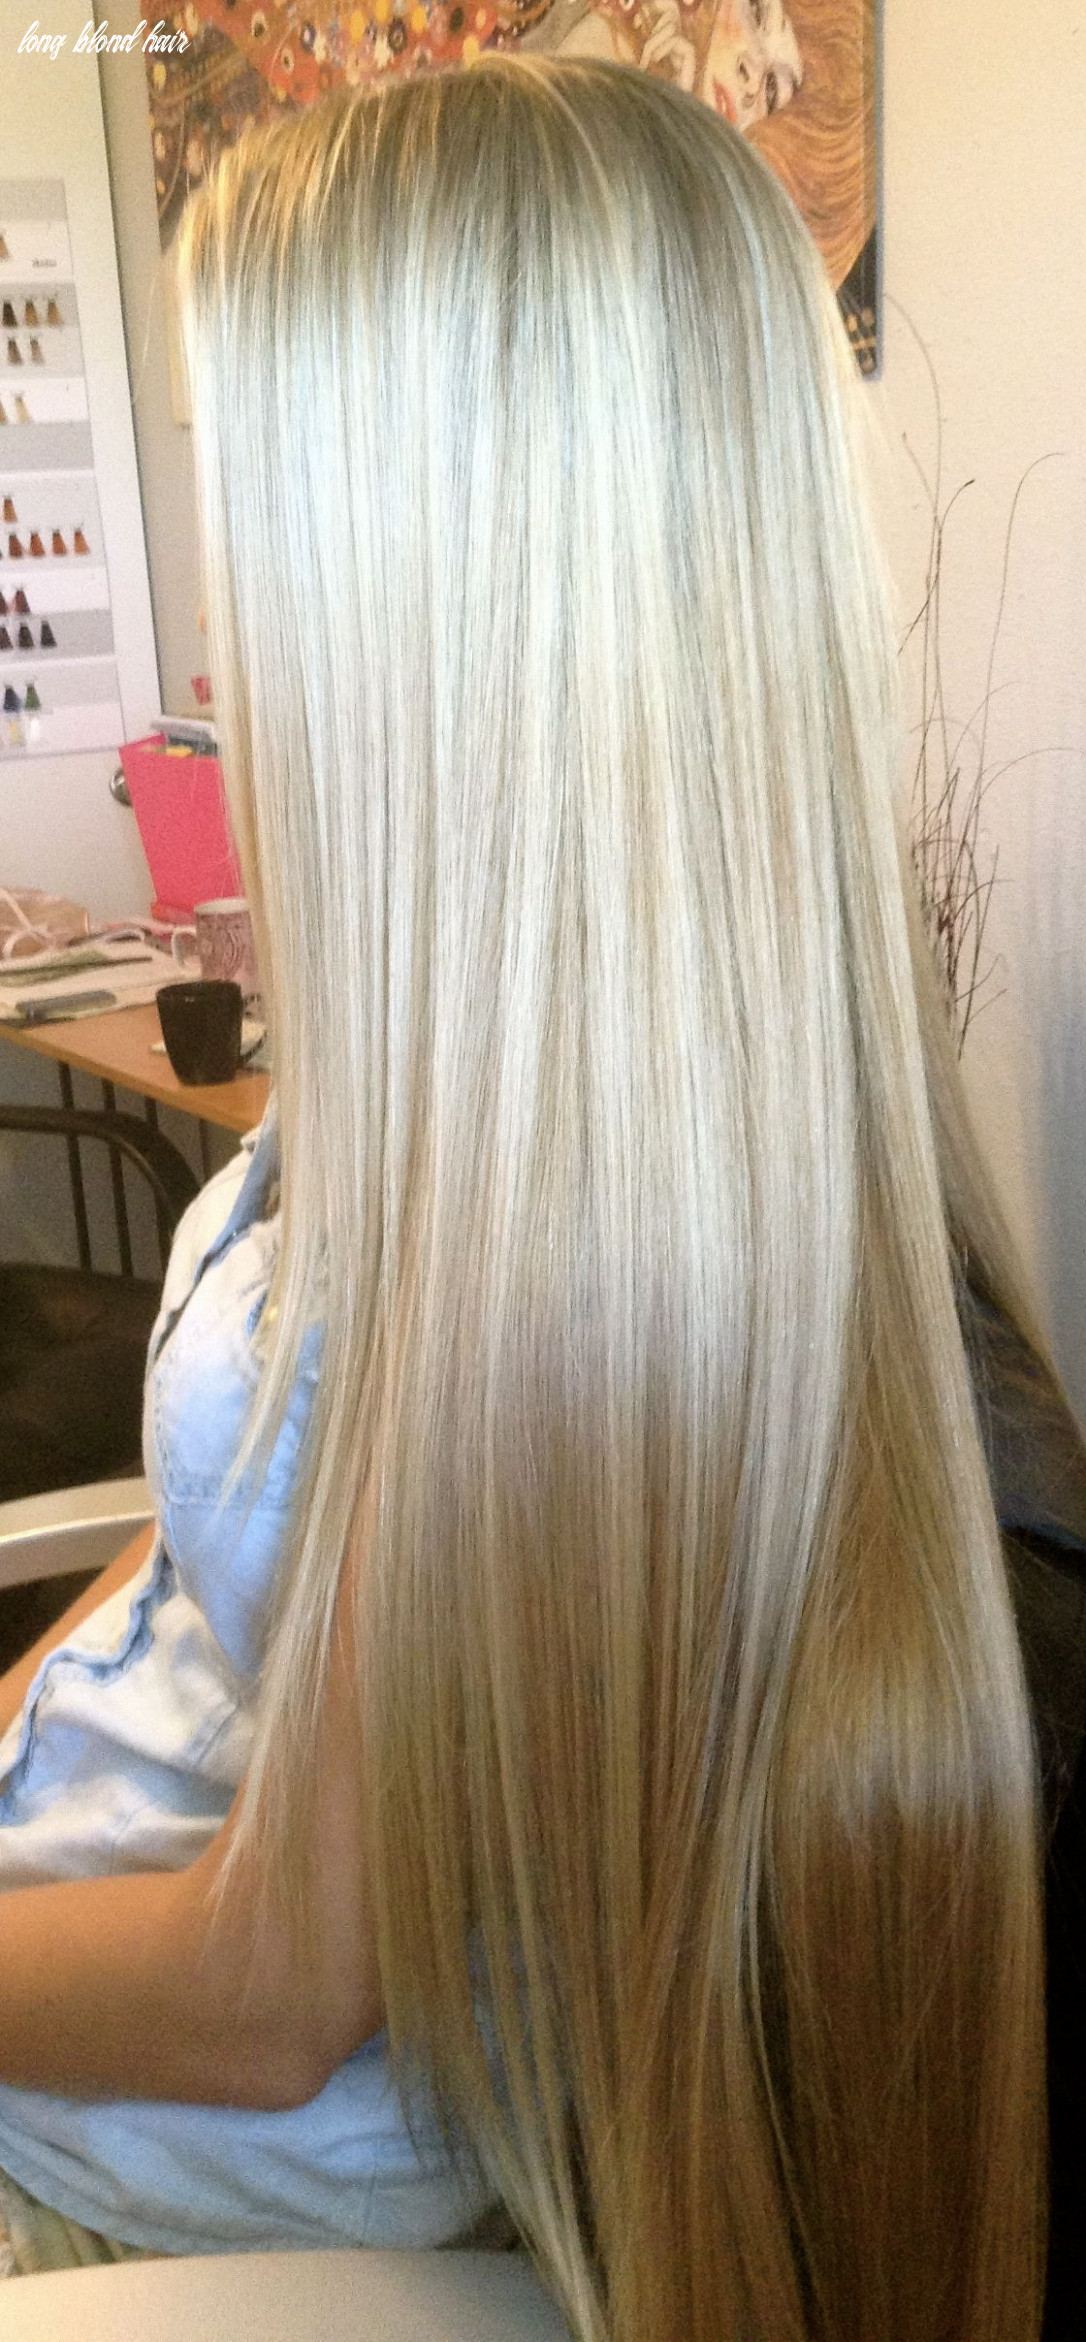 Pinning just because this is possibly the most gorgeous long blond